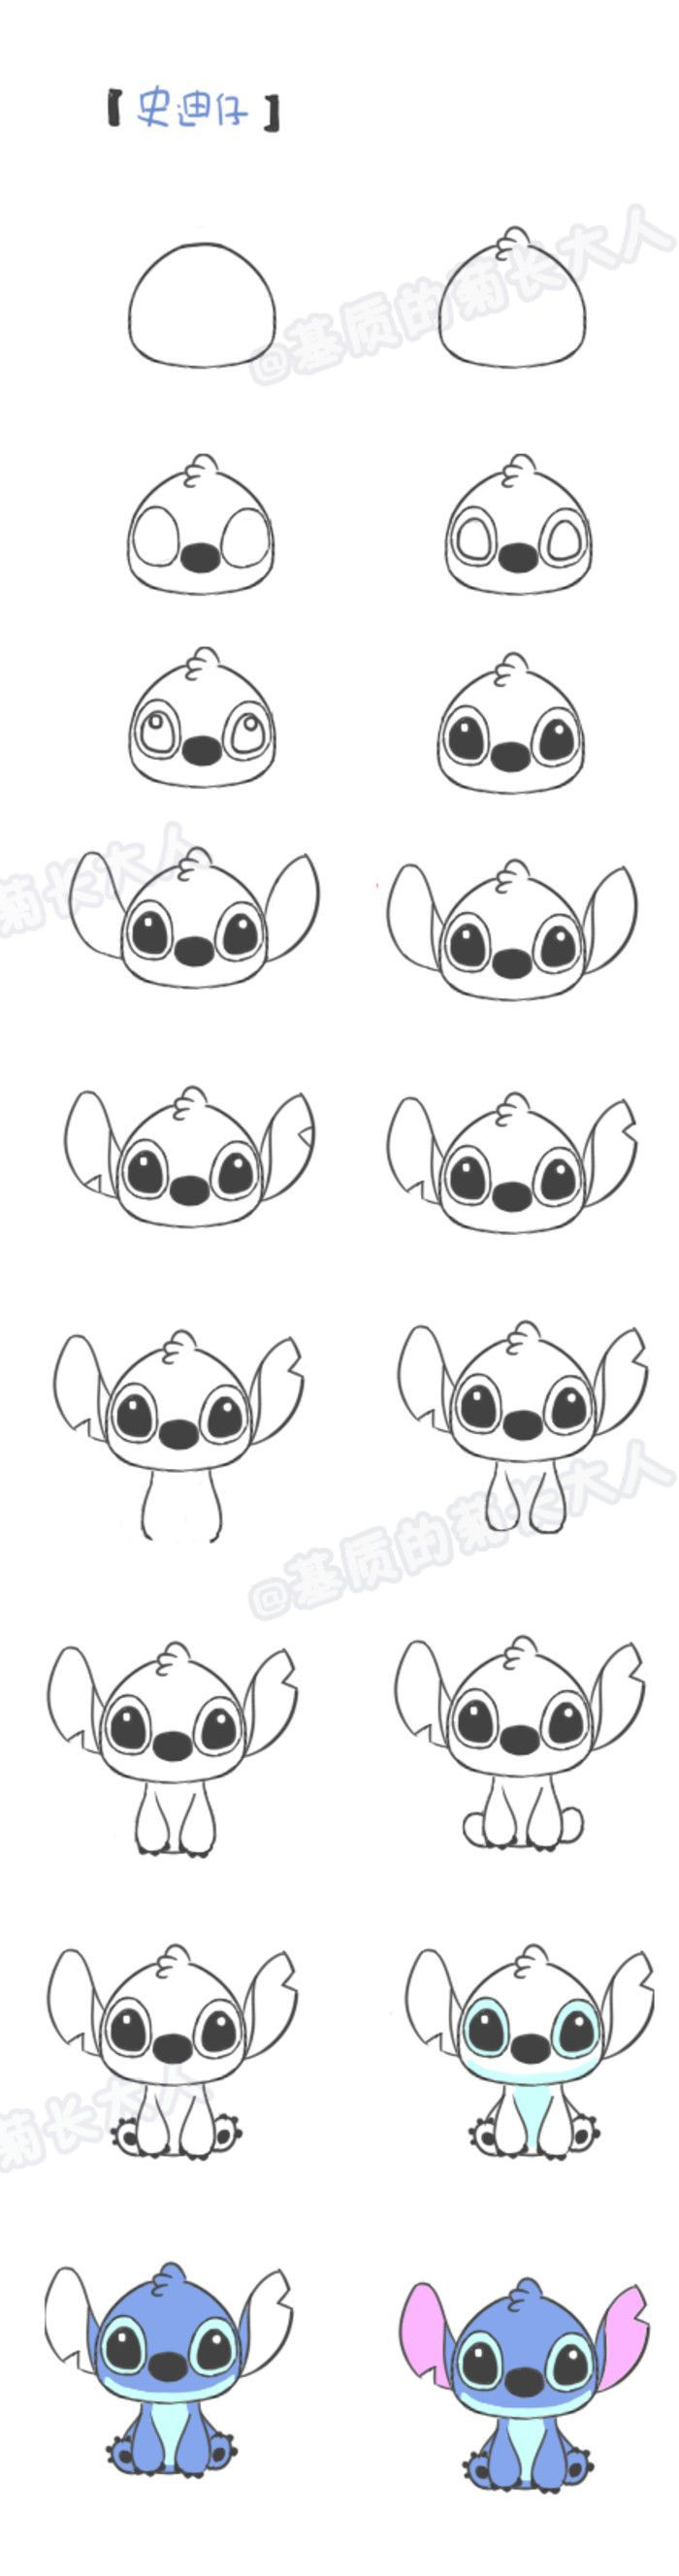 How To Draw Stitch Drawings Drawings Stitch Drawing Art